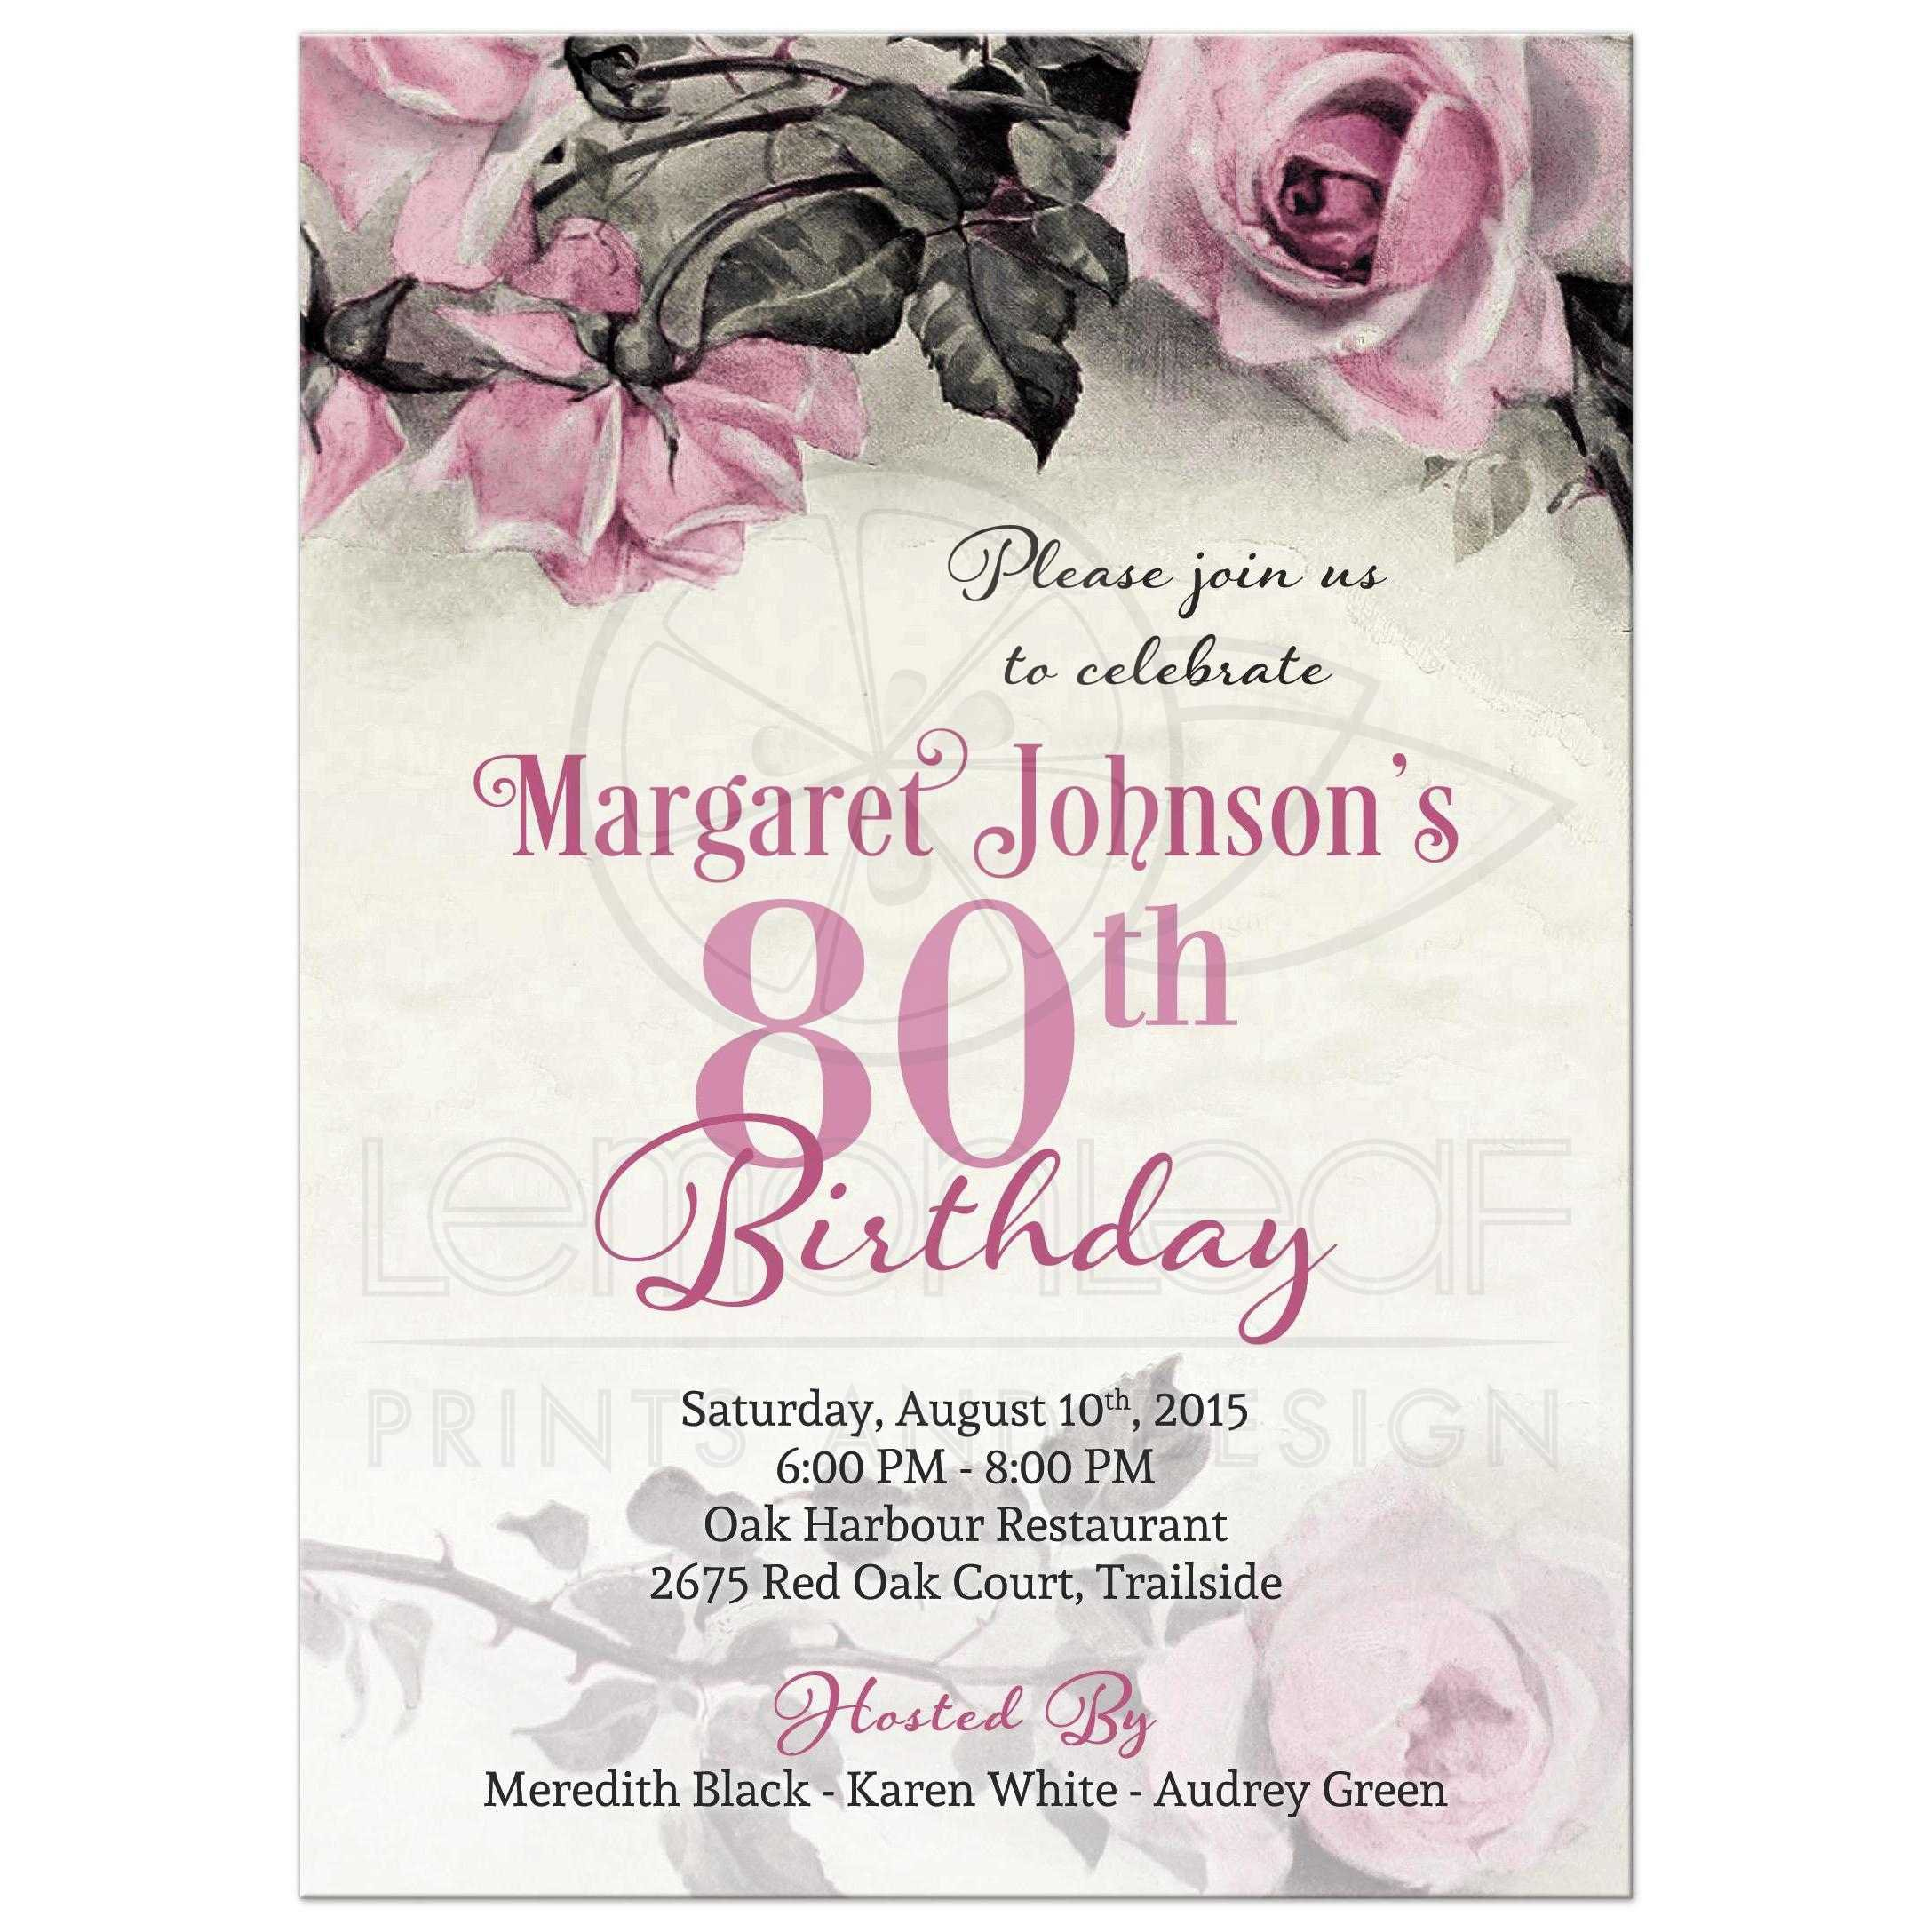 invitation to 80th birthday party free template ; princess-party-invitations-free-printable-80th-birthday-invitations-templates-alanarasbach-com